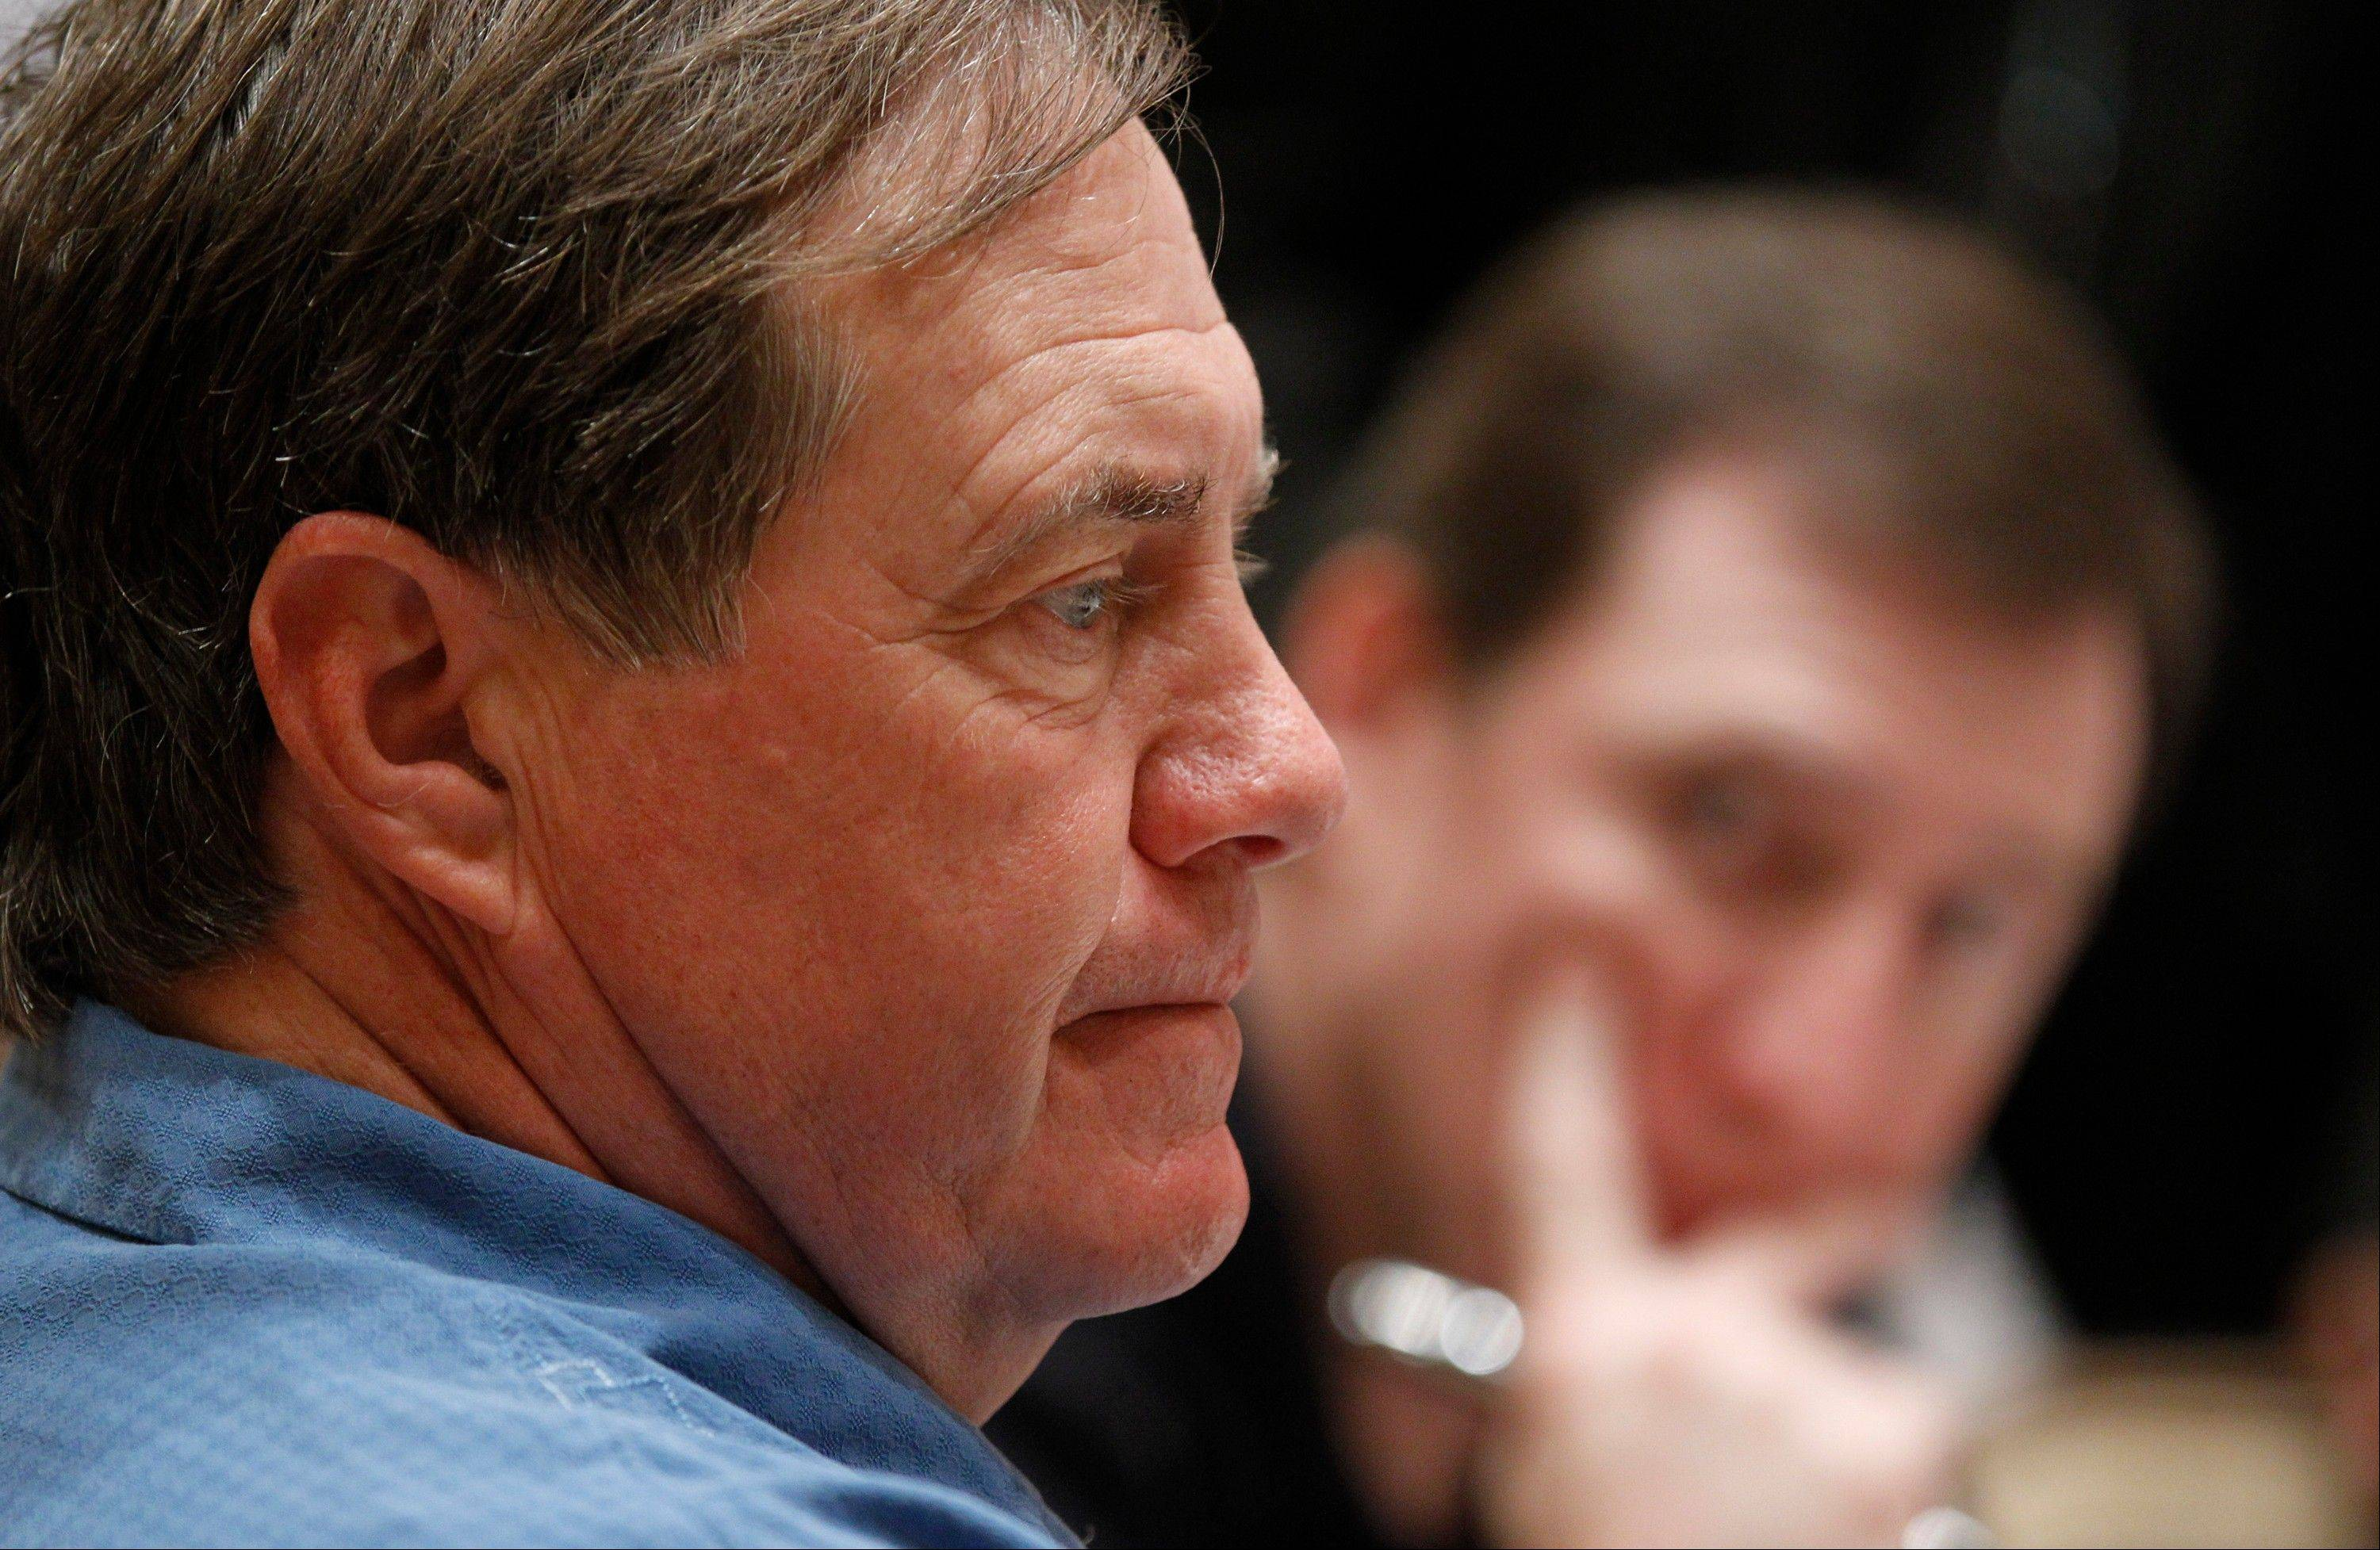 New England Patriots coach Bill Belichick listens to a question from a members of the media Tuesday during an interview at the NFL owners meeting in Palm Beach, Fla.